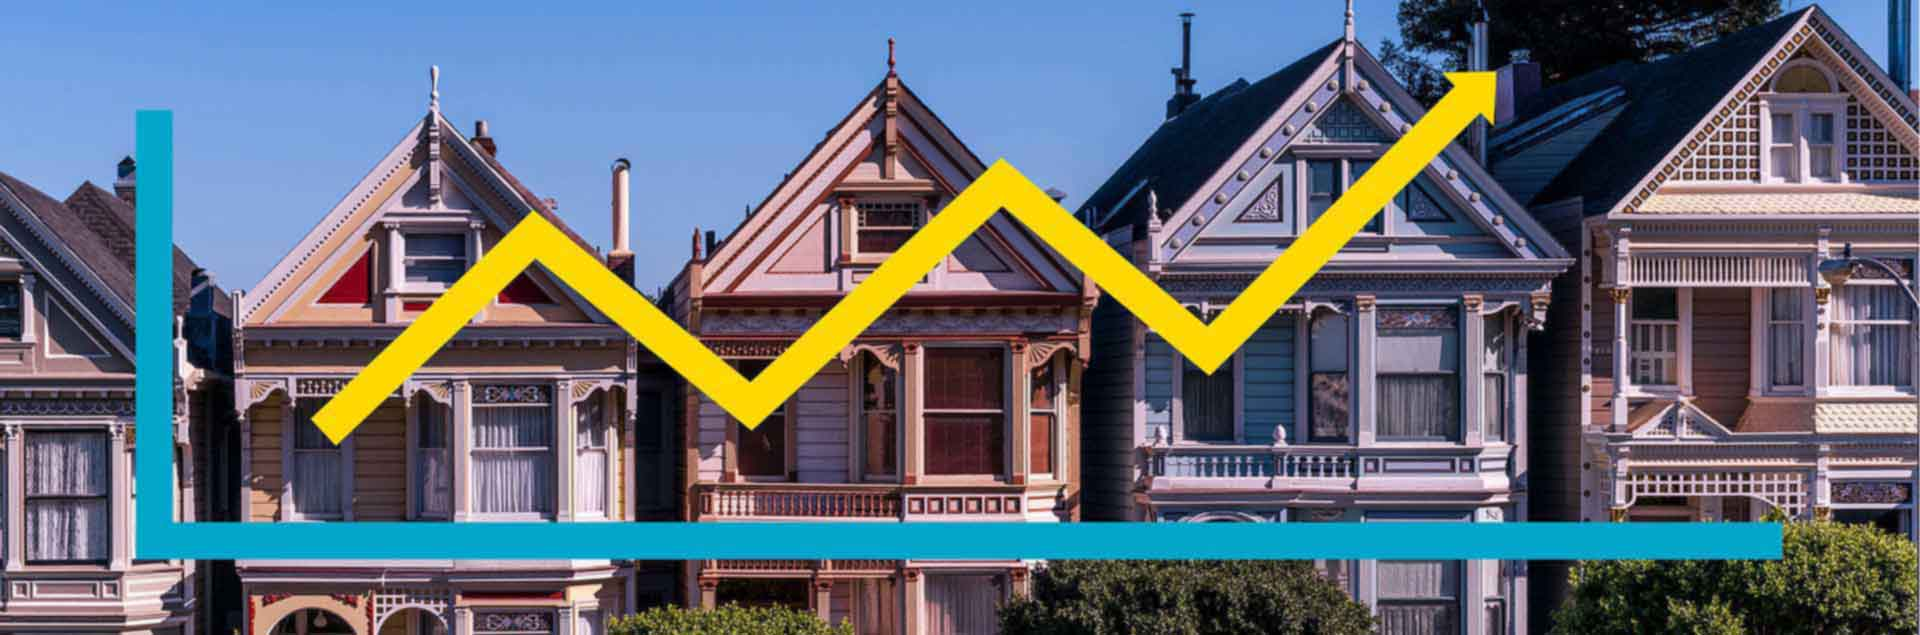 TransUnion landlord survey about the rental housing market